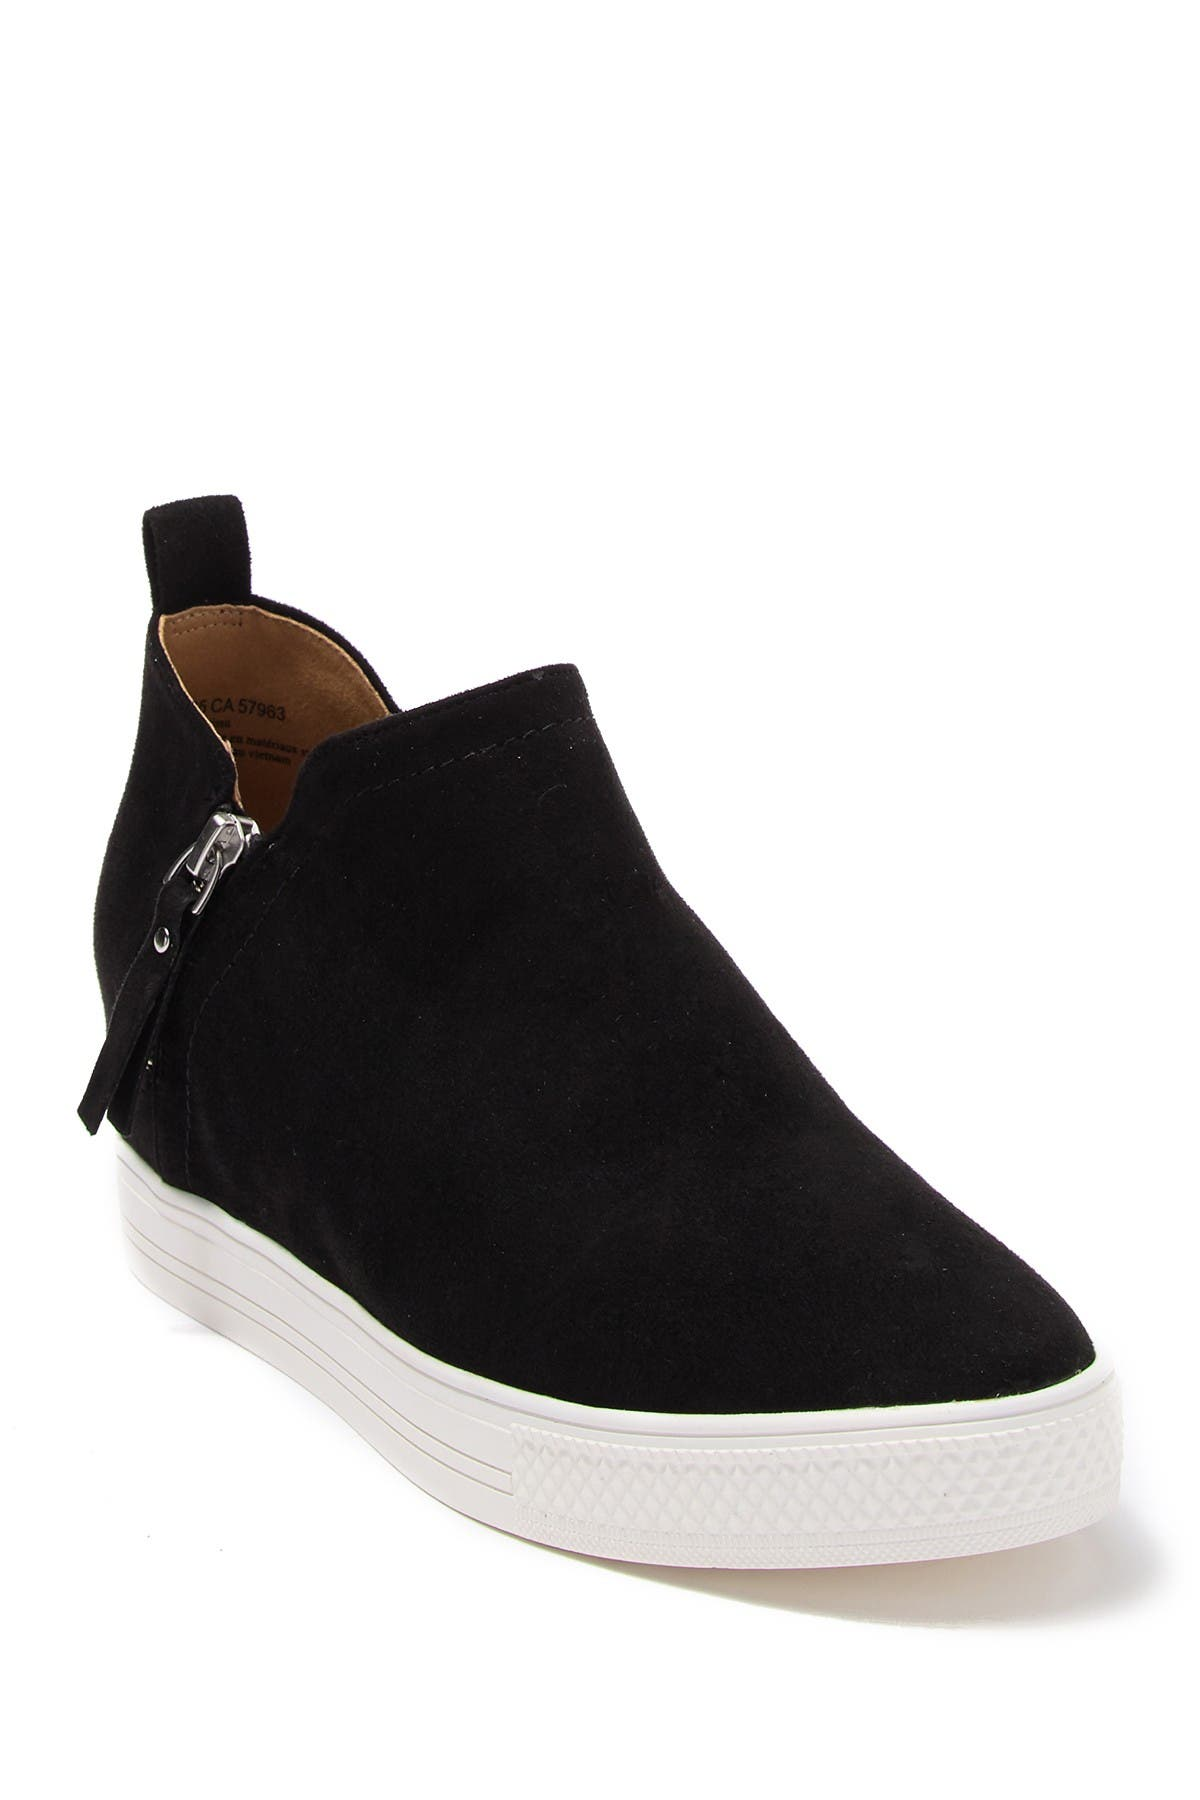 Image of SUSINA Adara Wedge Sneaker